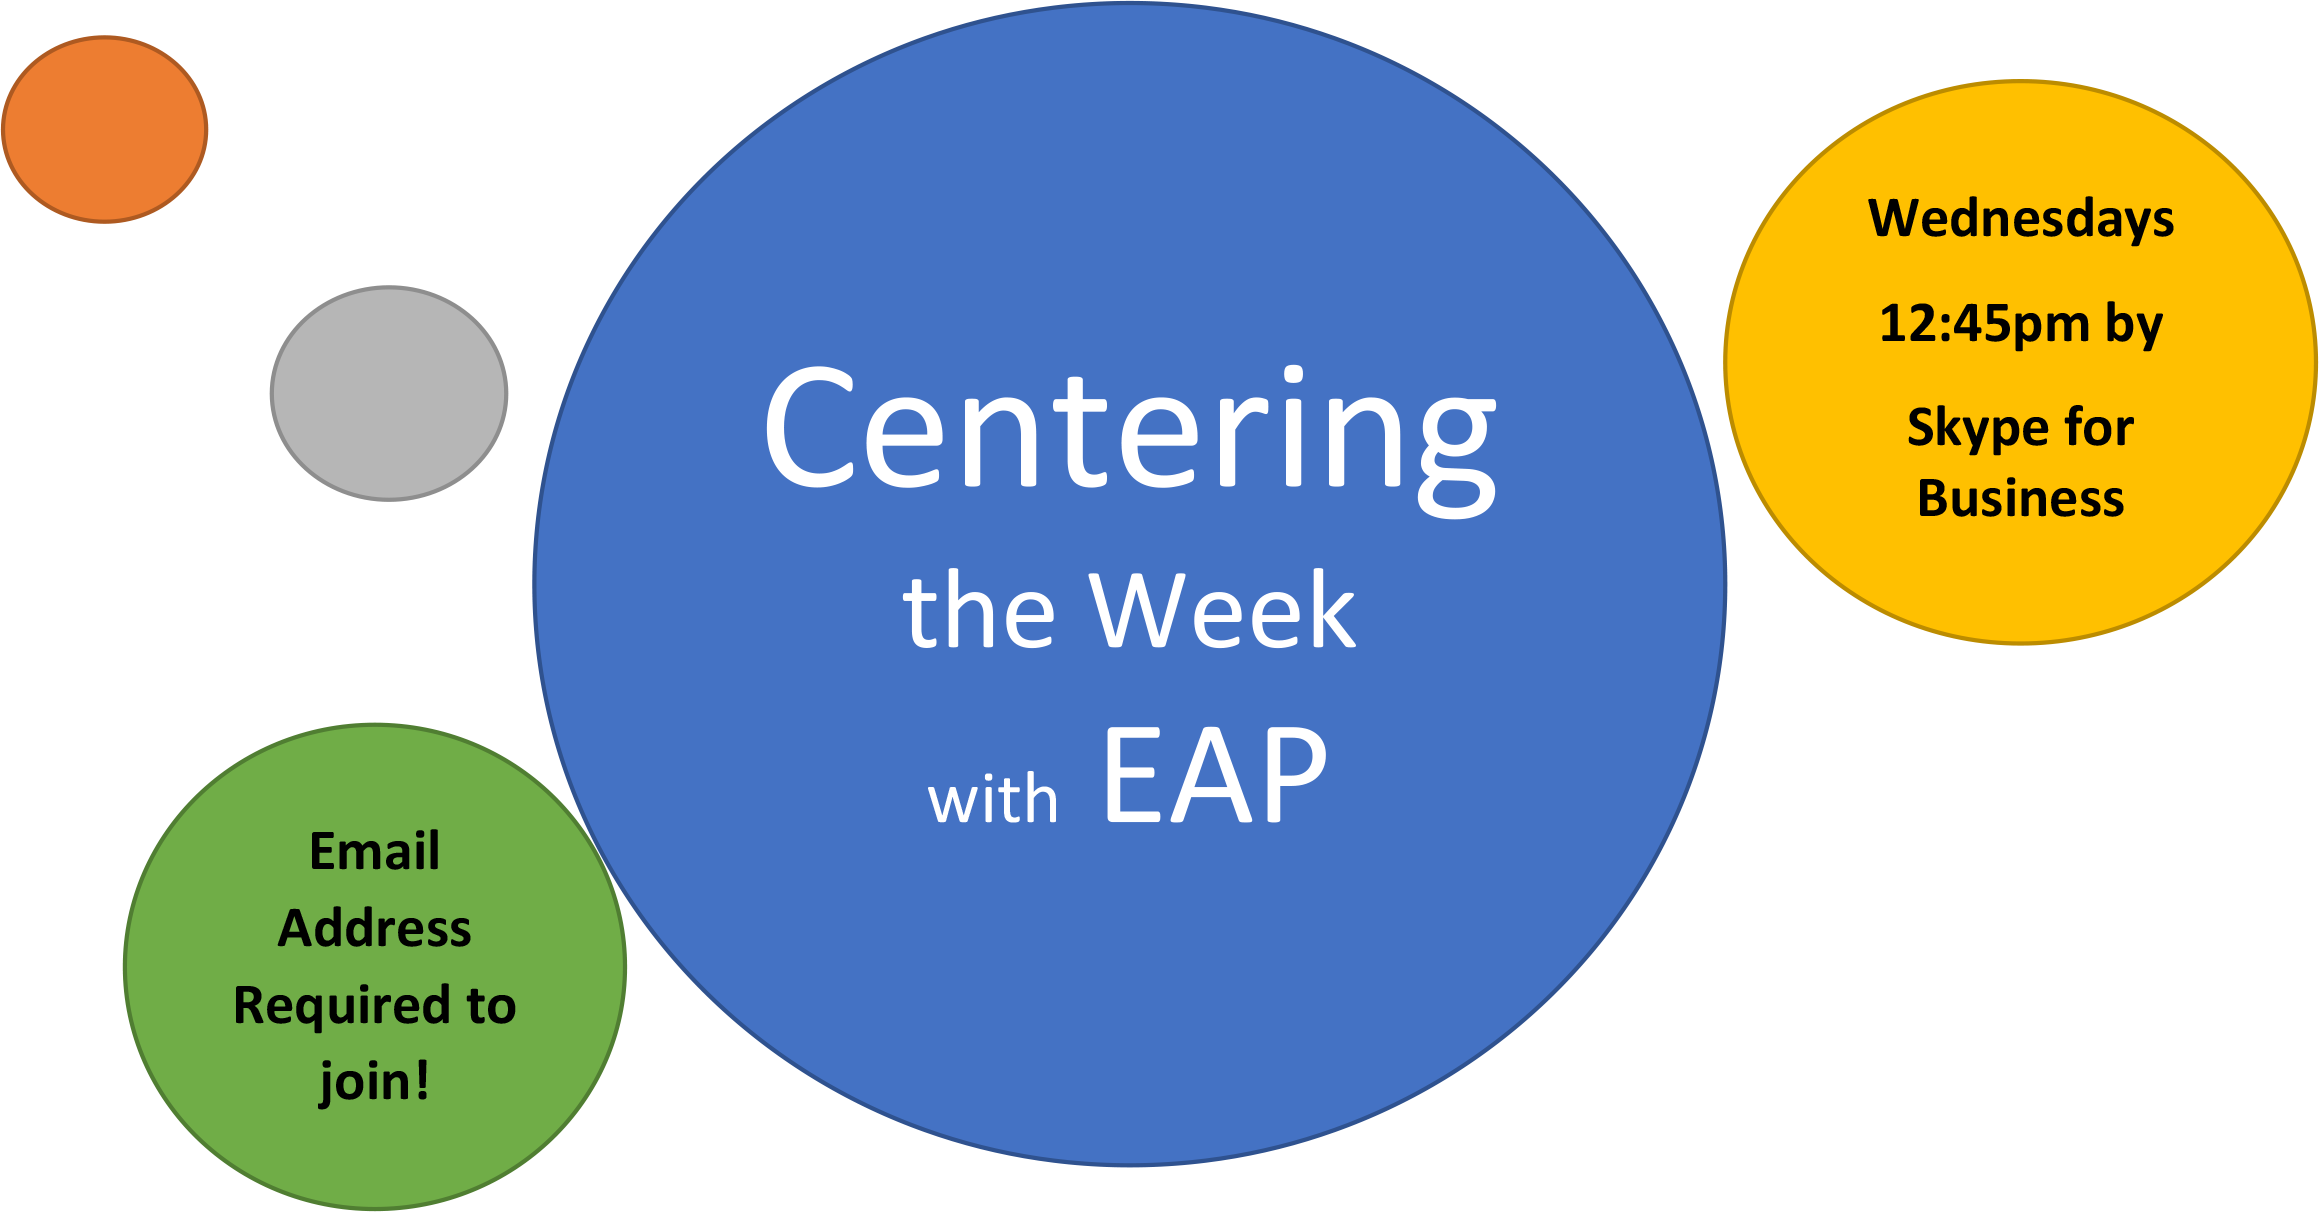 Centering the Week with EAP